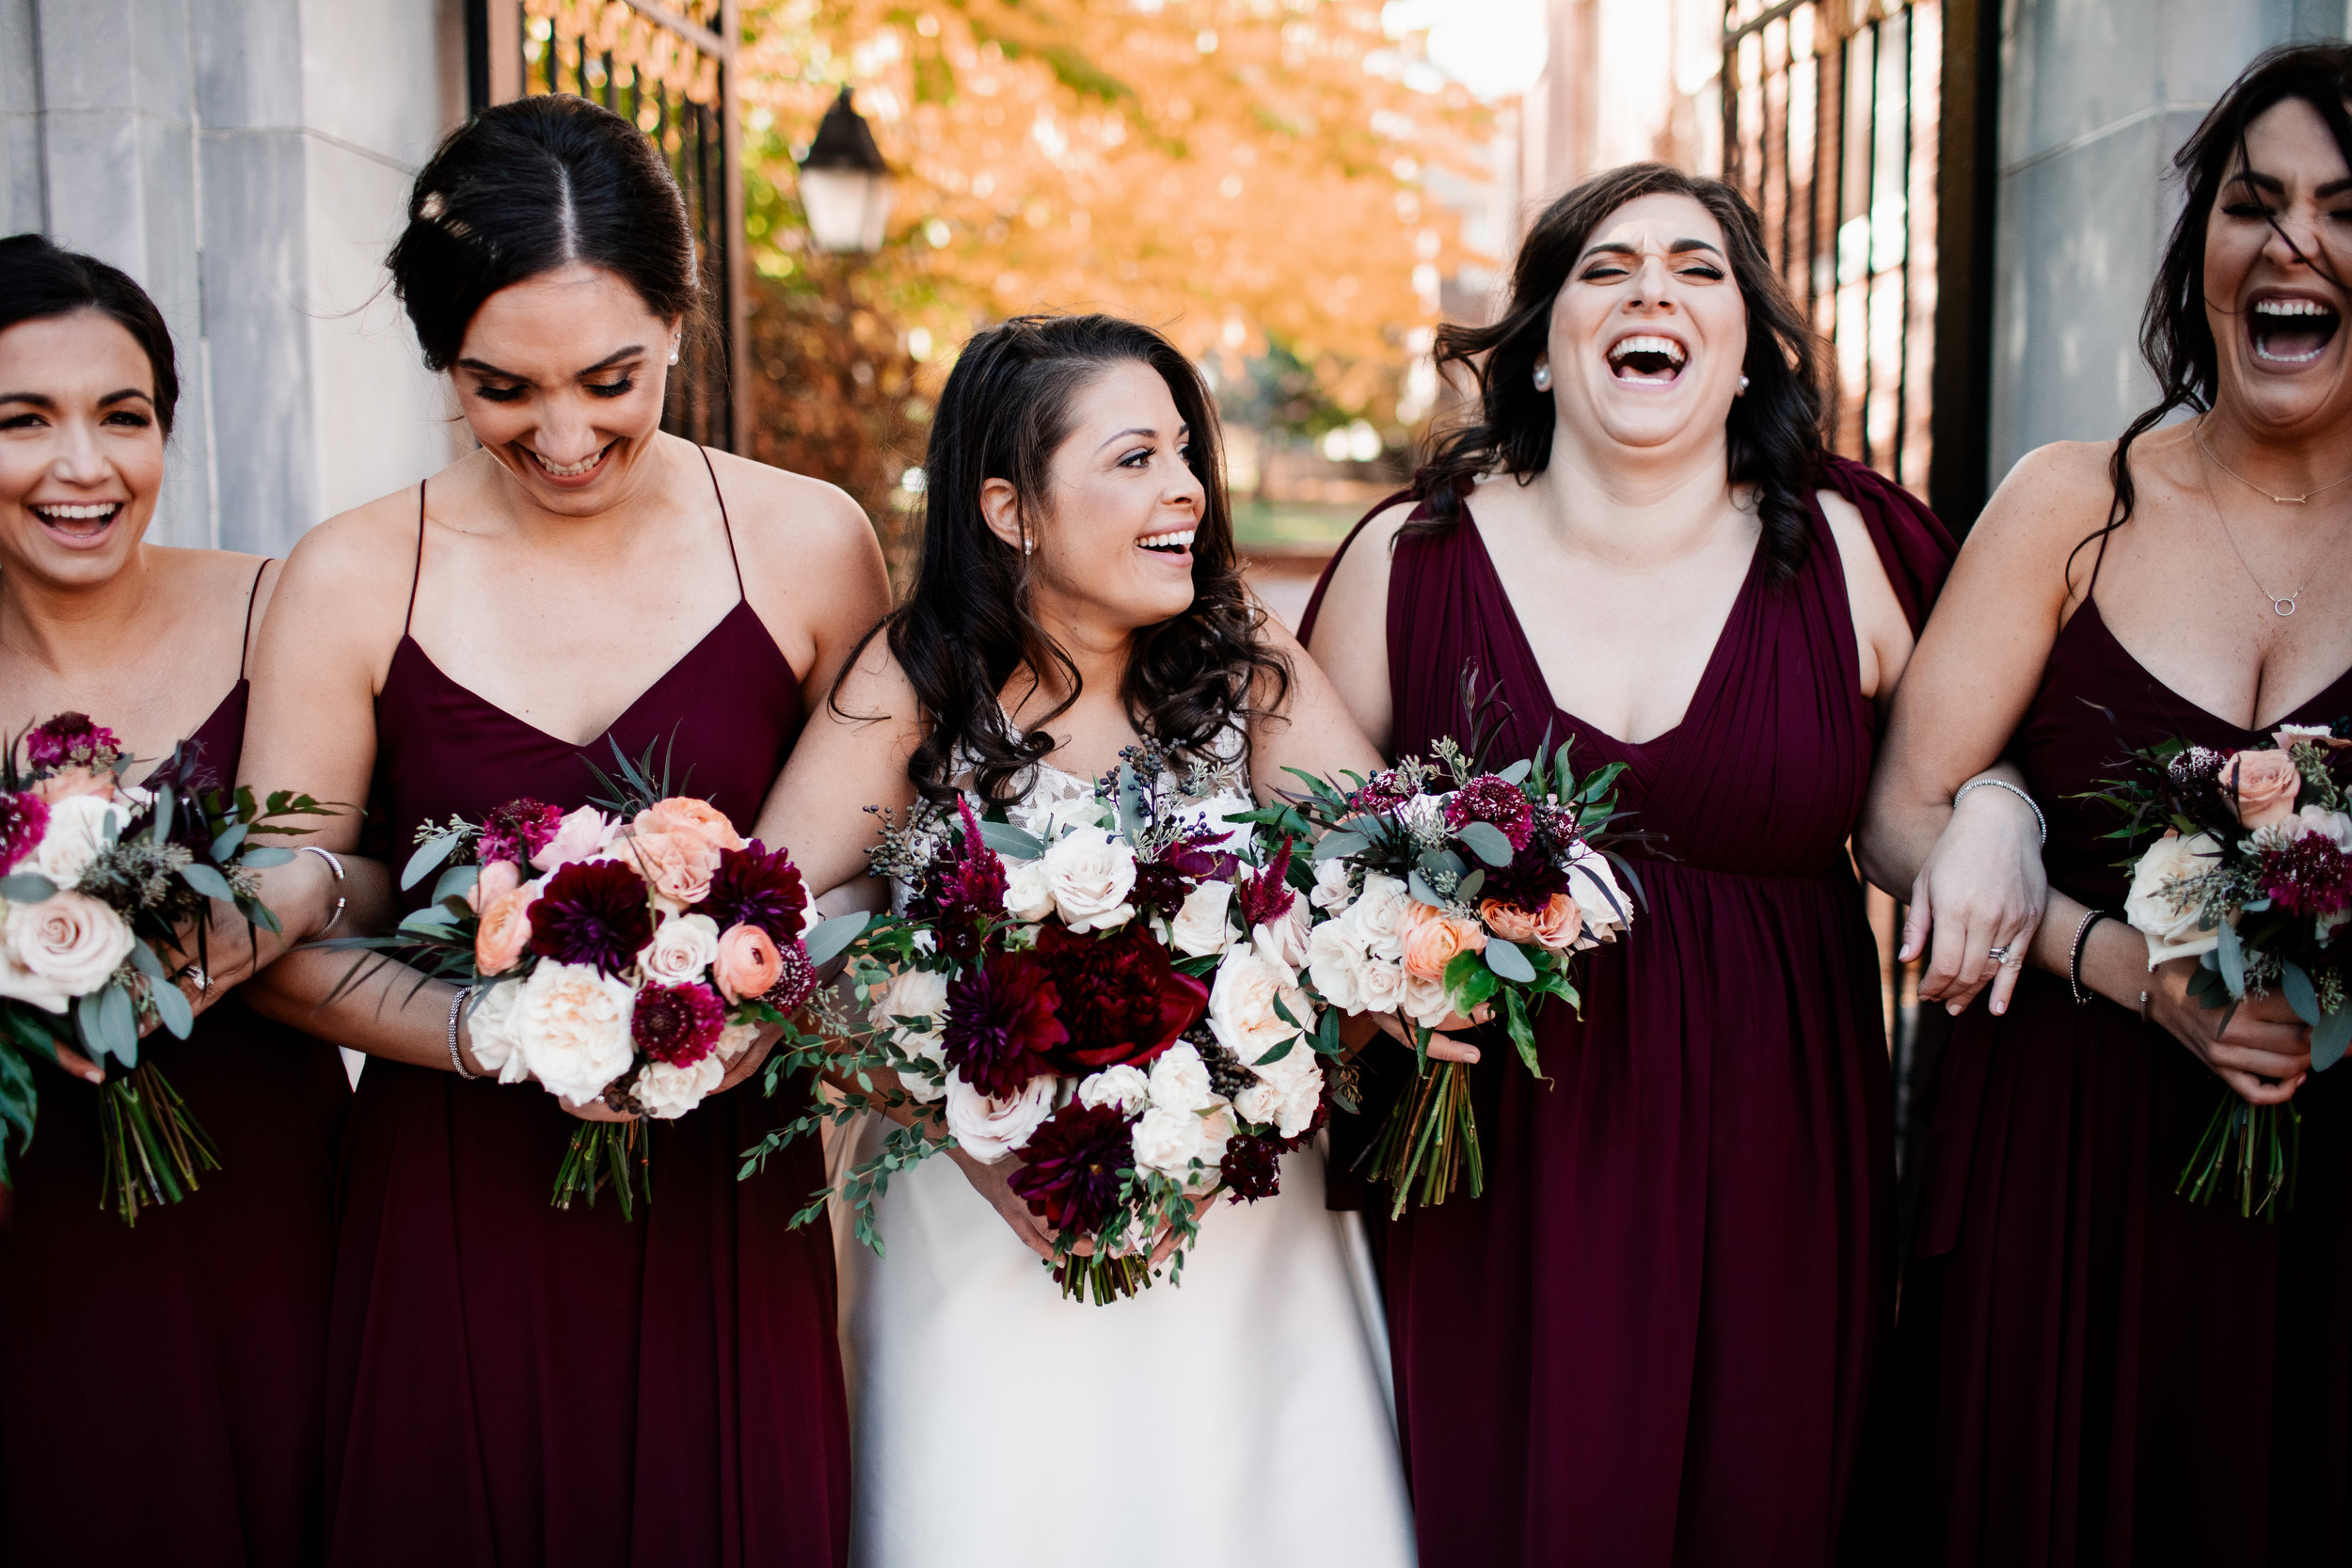 Philadelphia Wedding, Olde Bar Bride, Bridal Flowers, Fall Bouquet, We Laugh We Love Photography